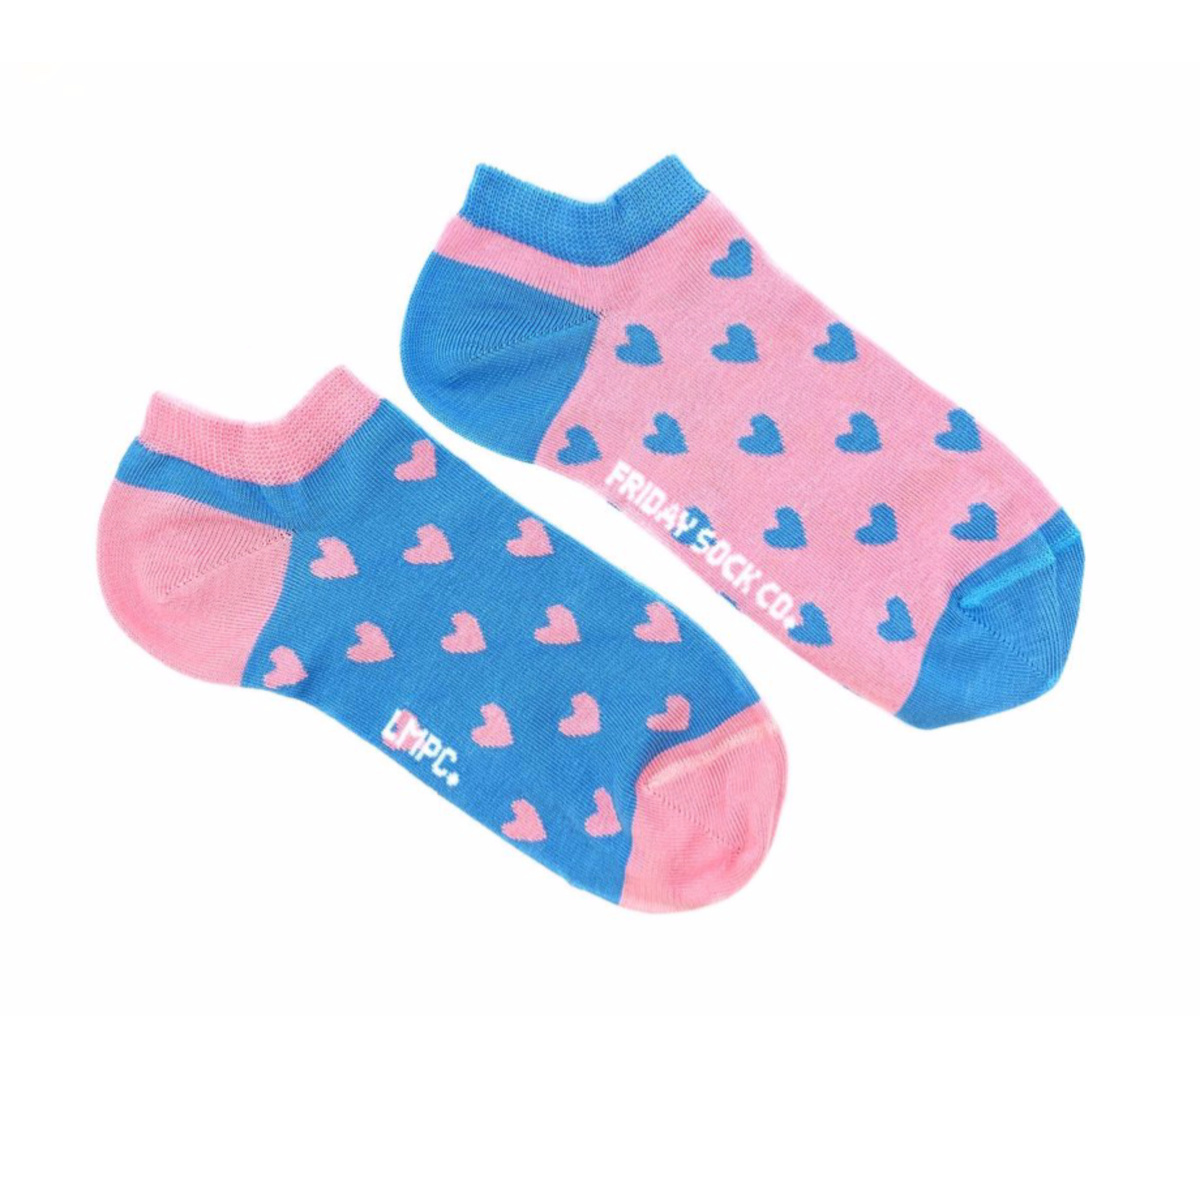 Friday Sock Co. Friday Sock Co. Women's Pink & Blue Hearts Ankle W 5 - 10 (M - 4 - 8)